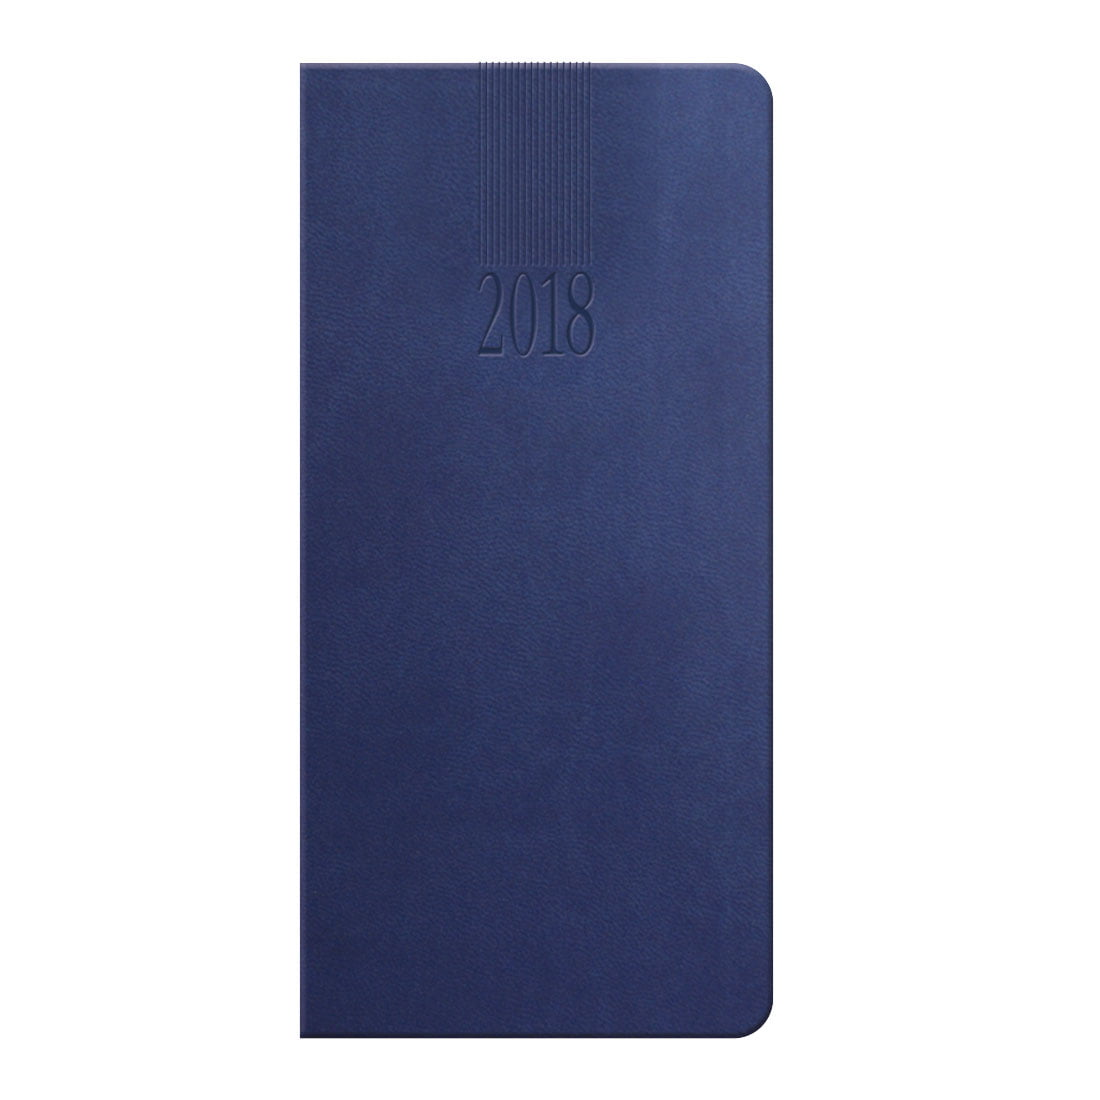 Tuscon weekly promotional pocket diary in China blue with a padded cover, ribbon marker.